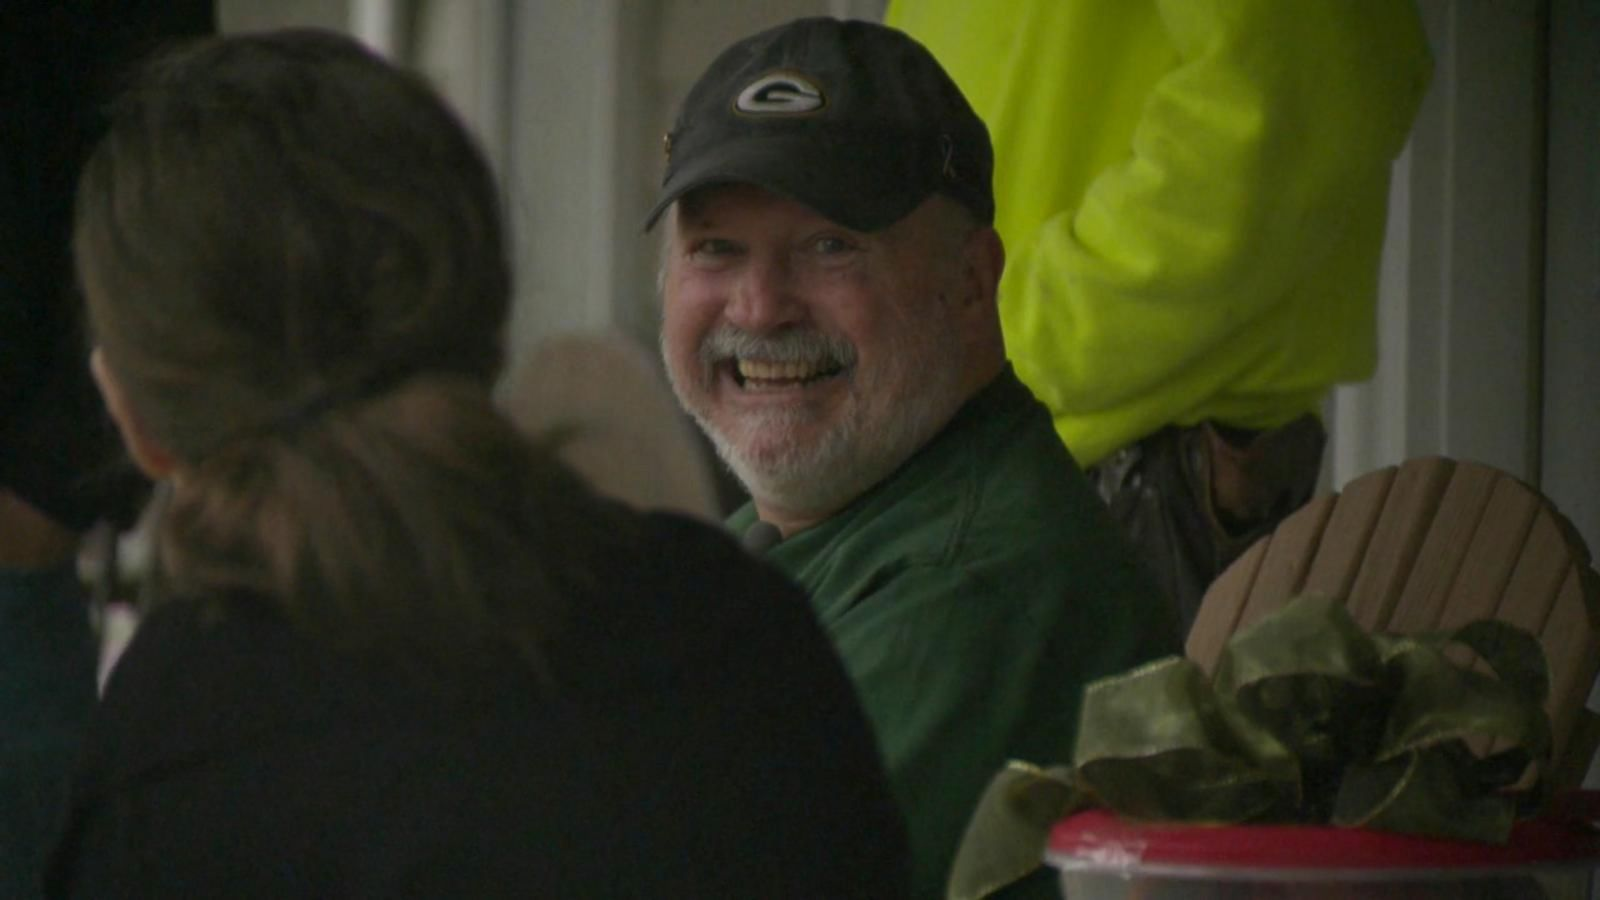 Rich Nowakowski, of Hartland, Wisconsin, was shocked when the construction crew near his house gifted him with Packers tickets, $400 in cash and special team gear.